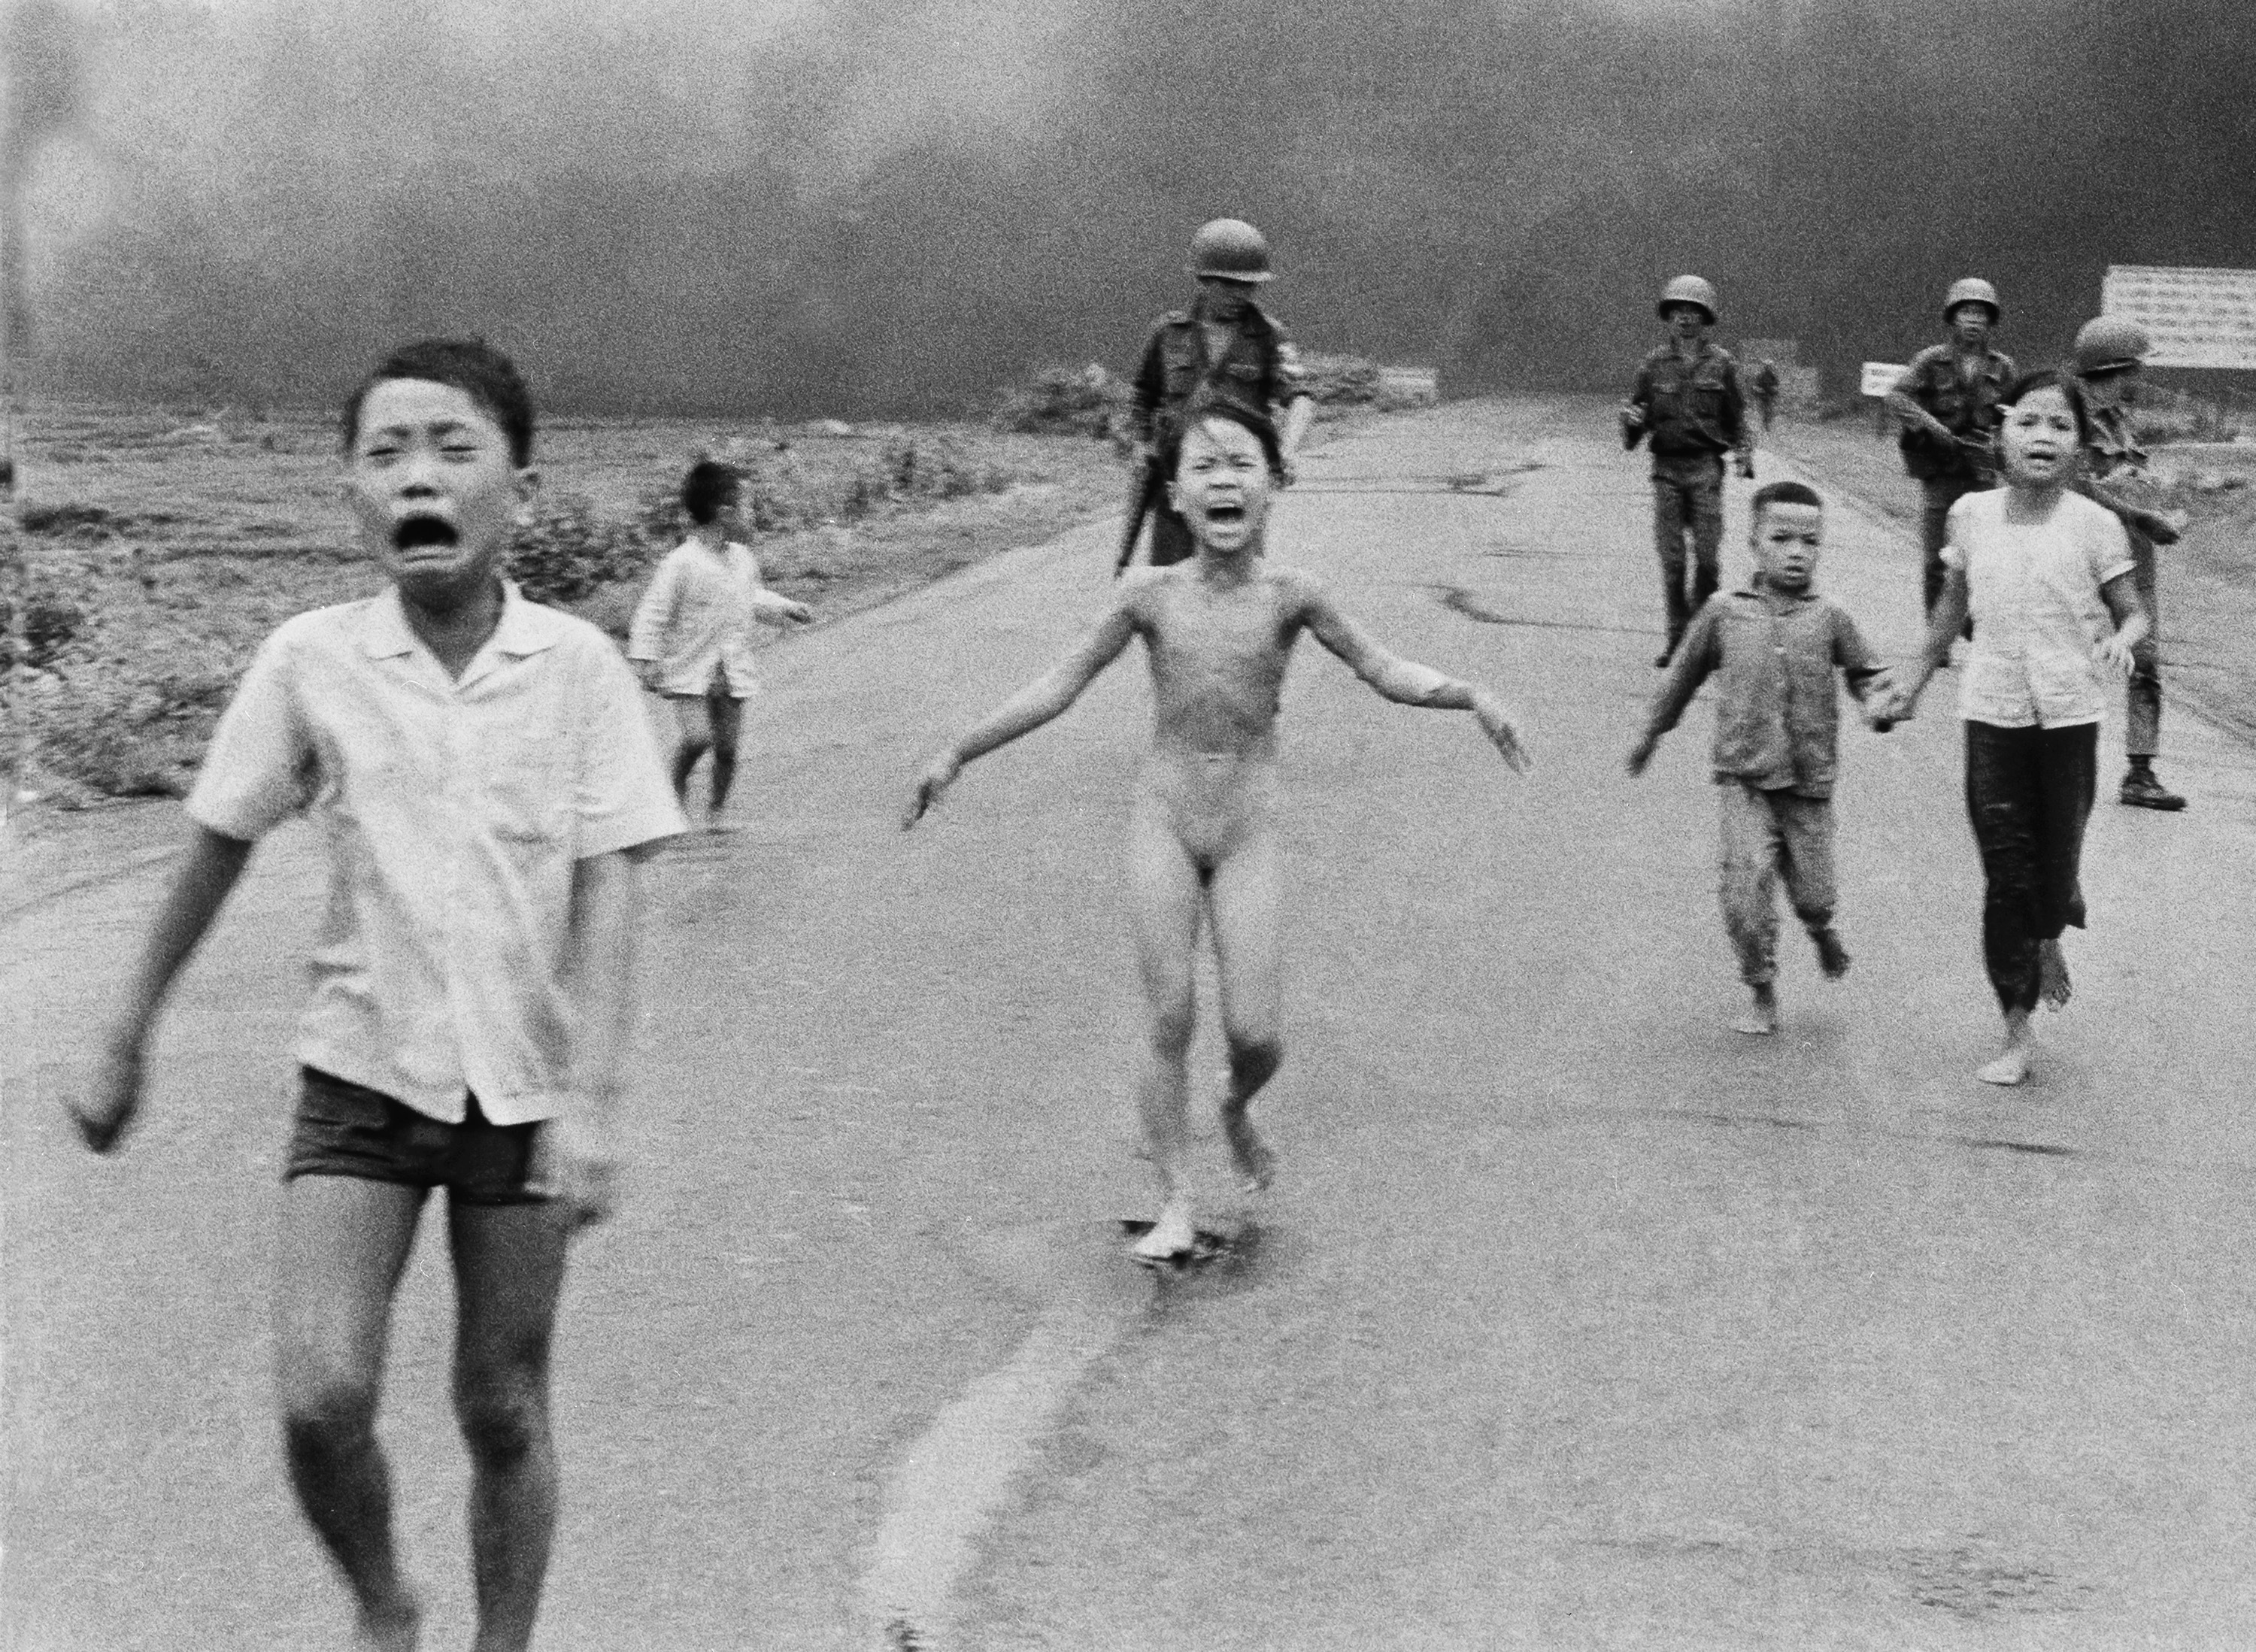 FILE - In this June 8, 1972 file photo, South Vietnamese forces follow after terrified children, including 9-year-old Kim Phuc, center, as they run down Route 1 near Trang Bang after an aerial napalm attack on suspected Viet Cong hiding places. A South Vietnamese plane accidentally dropped its flaming napalm on South Vietnamese troops and civilians. The terrified girl had ripped off her burning clothes while fleeing. The children from left to right are: Phan Thanh Tam, younger brother of Kim Phuc, who lost an eye, Phan Thanh Phouc, youngest brother of Kim Phuc, Kim Phuc, and Kim's cousins Ho Van Bon, and Ho Thi Ting. Behind them are soldiers of the Vietnam Army 25th Division. (AP Photo/Nick Ut, File)